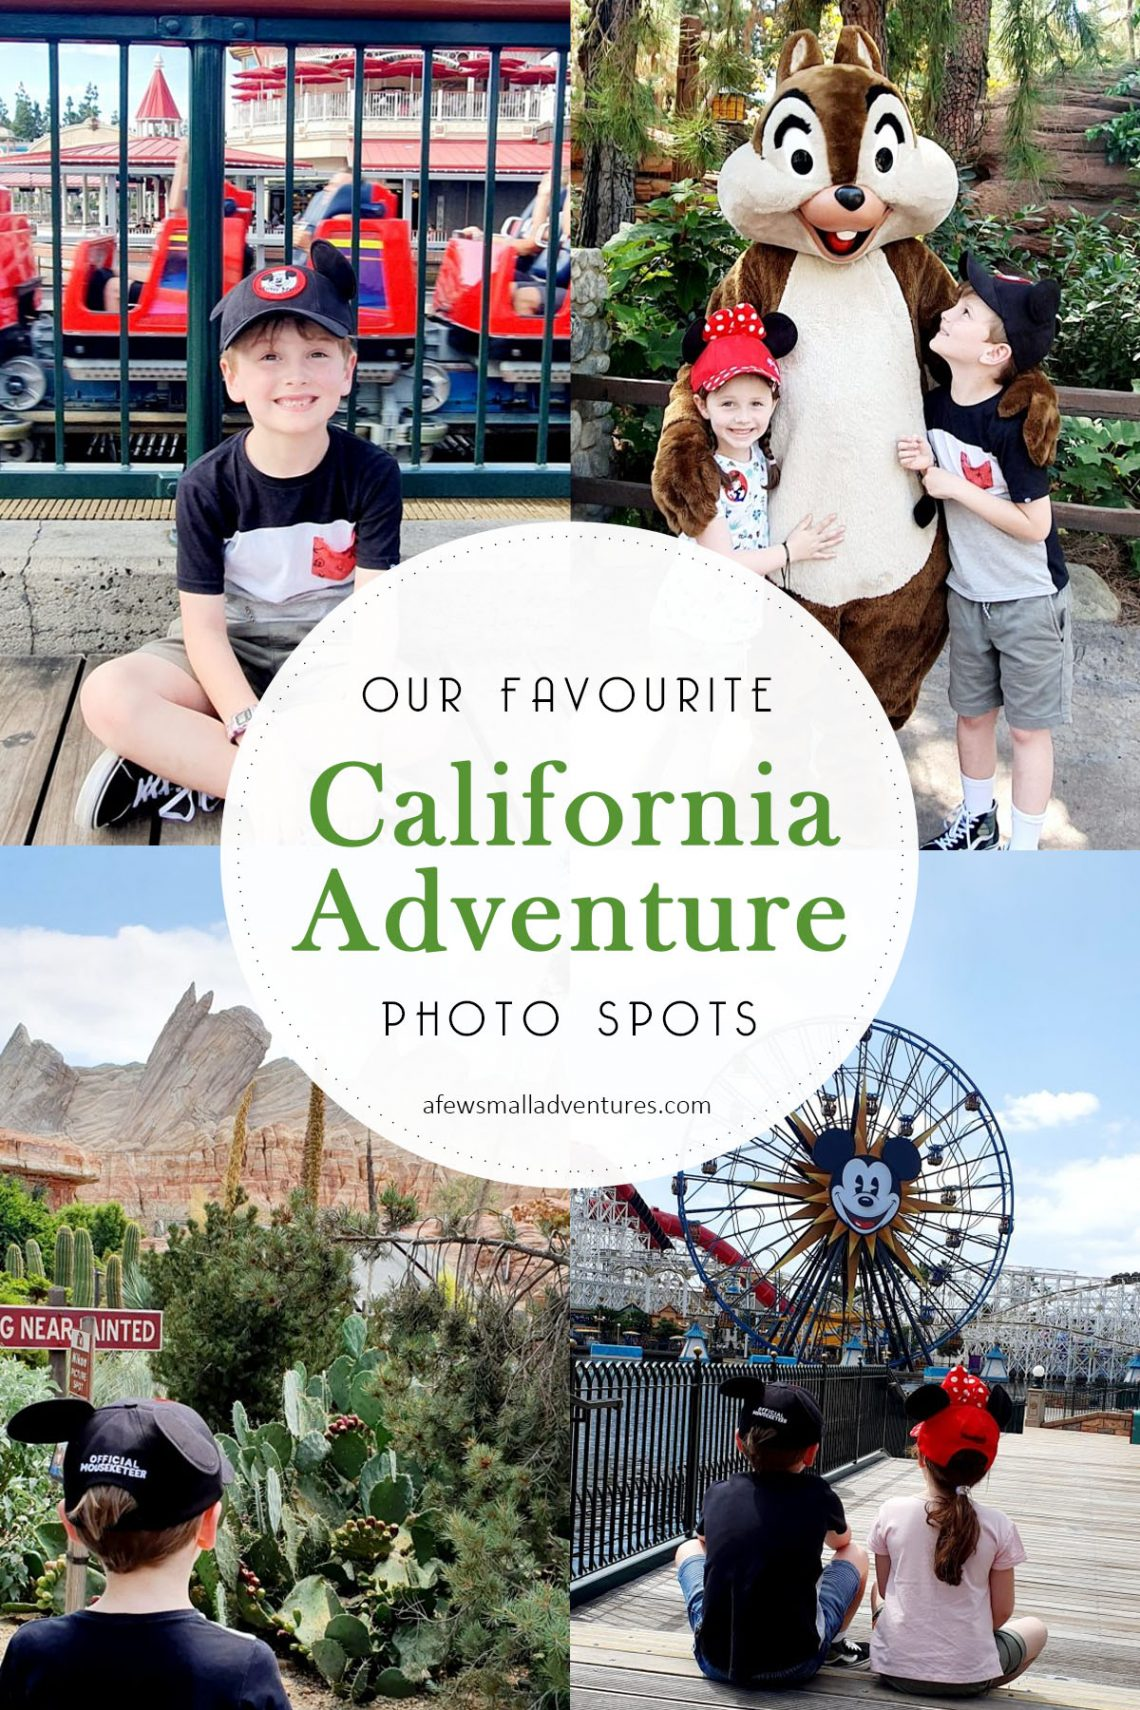 California Adventure Photo Spots